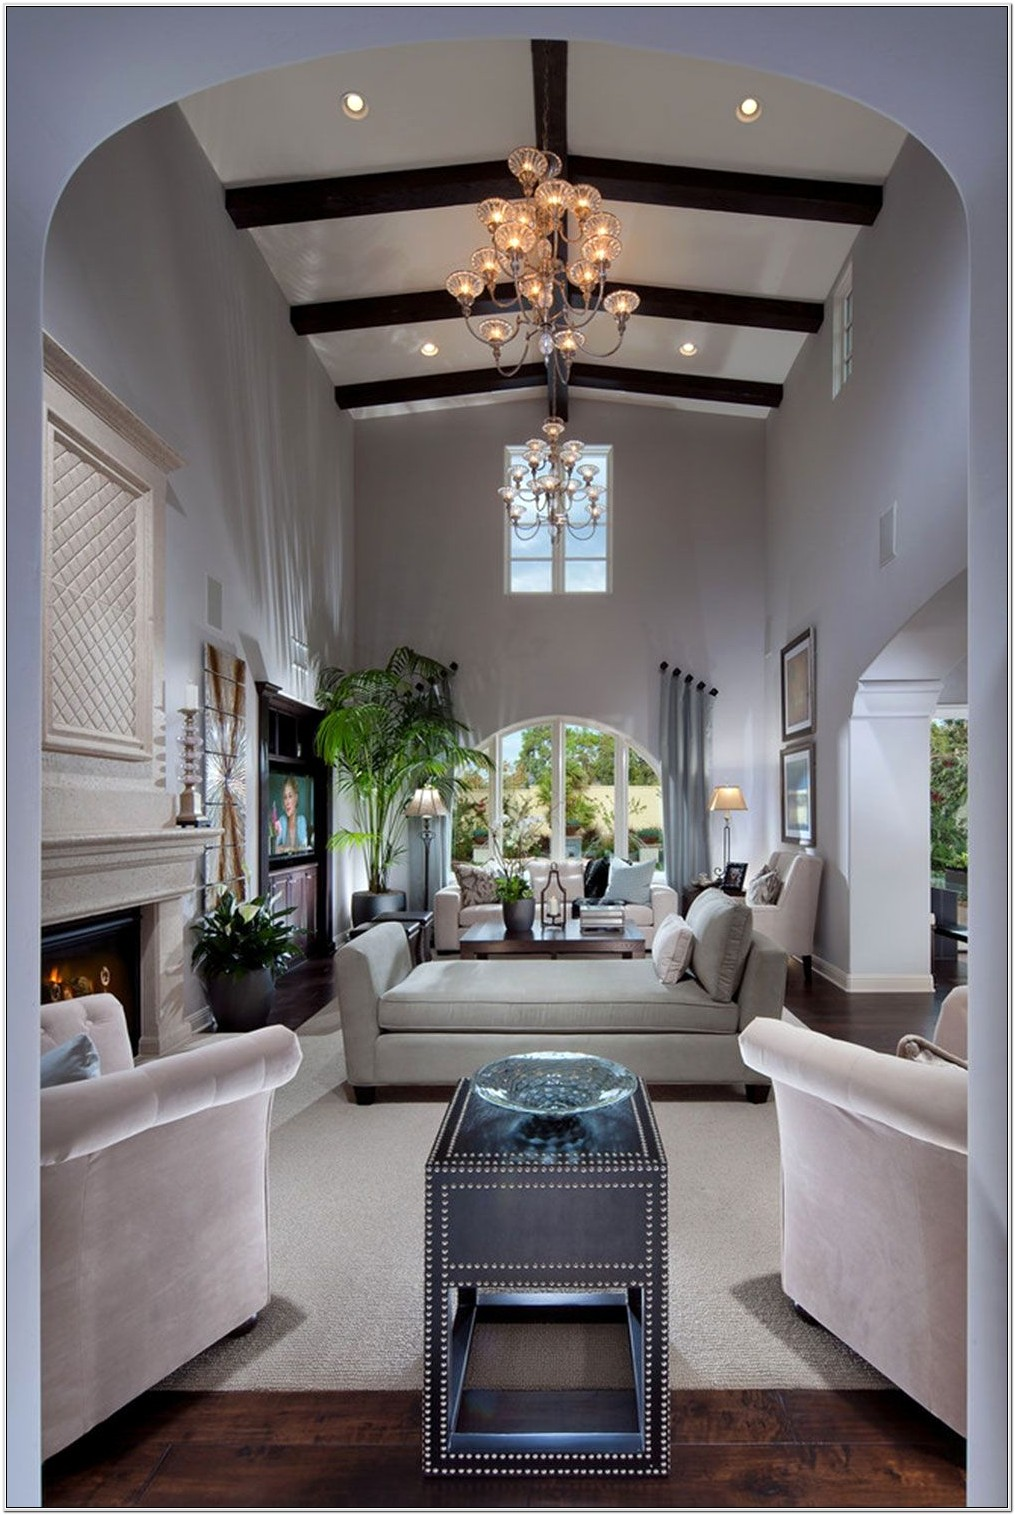 Living Room Focal Point Ideas No Fireplace